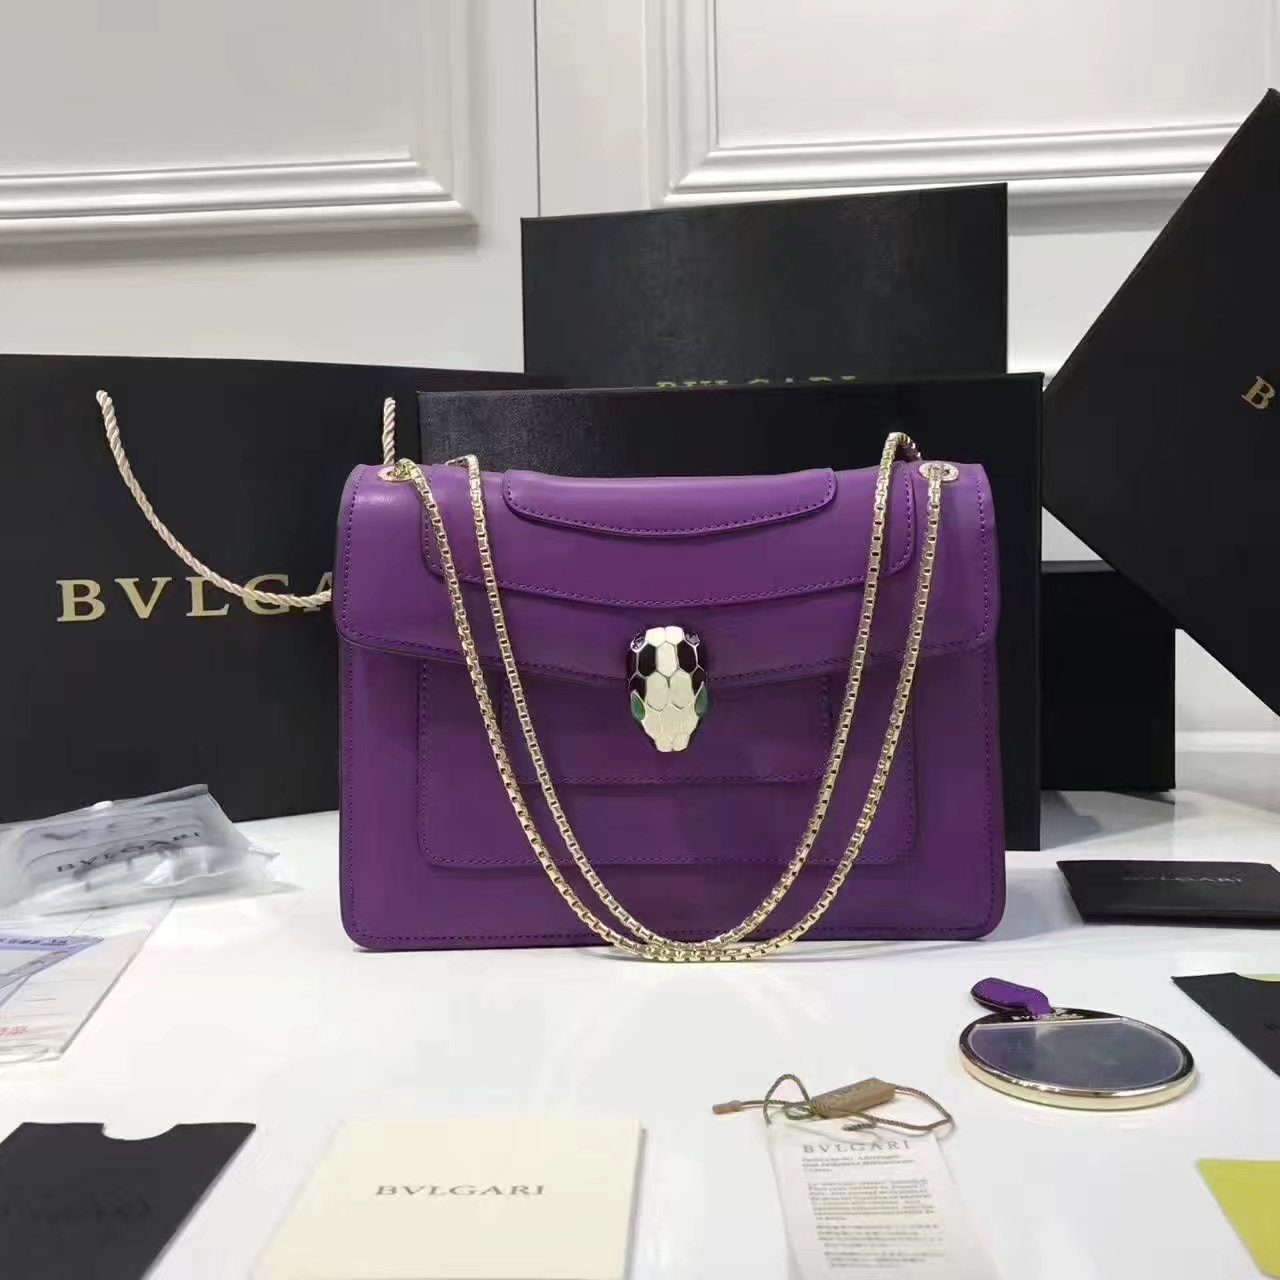 Bulgari Serpenti Forever Flap Cover Chain Shoulder Bag Purple With Malachite Eyes